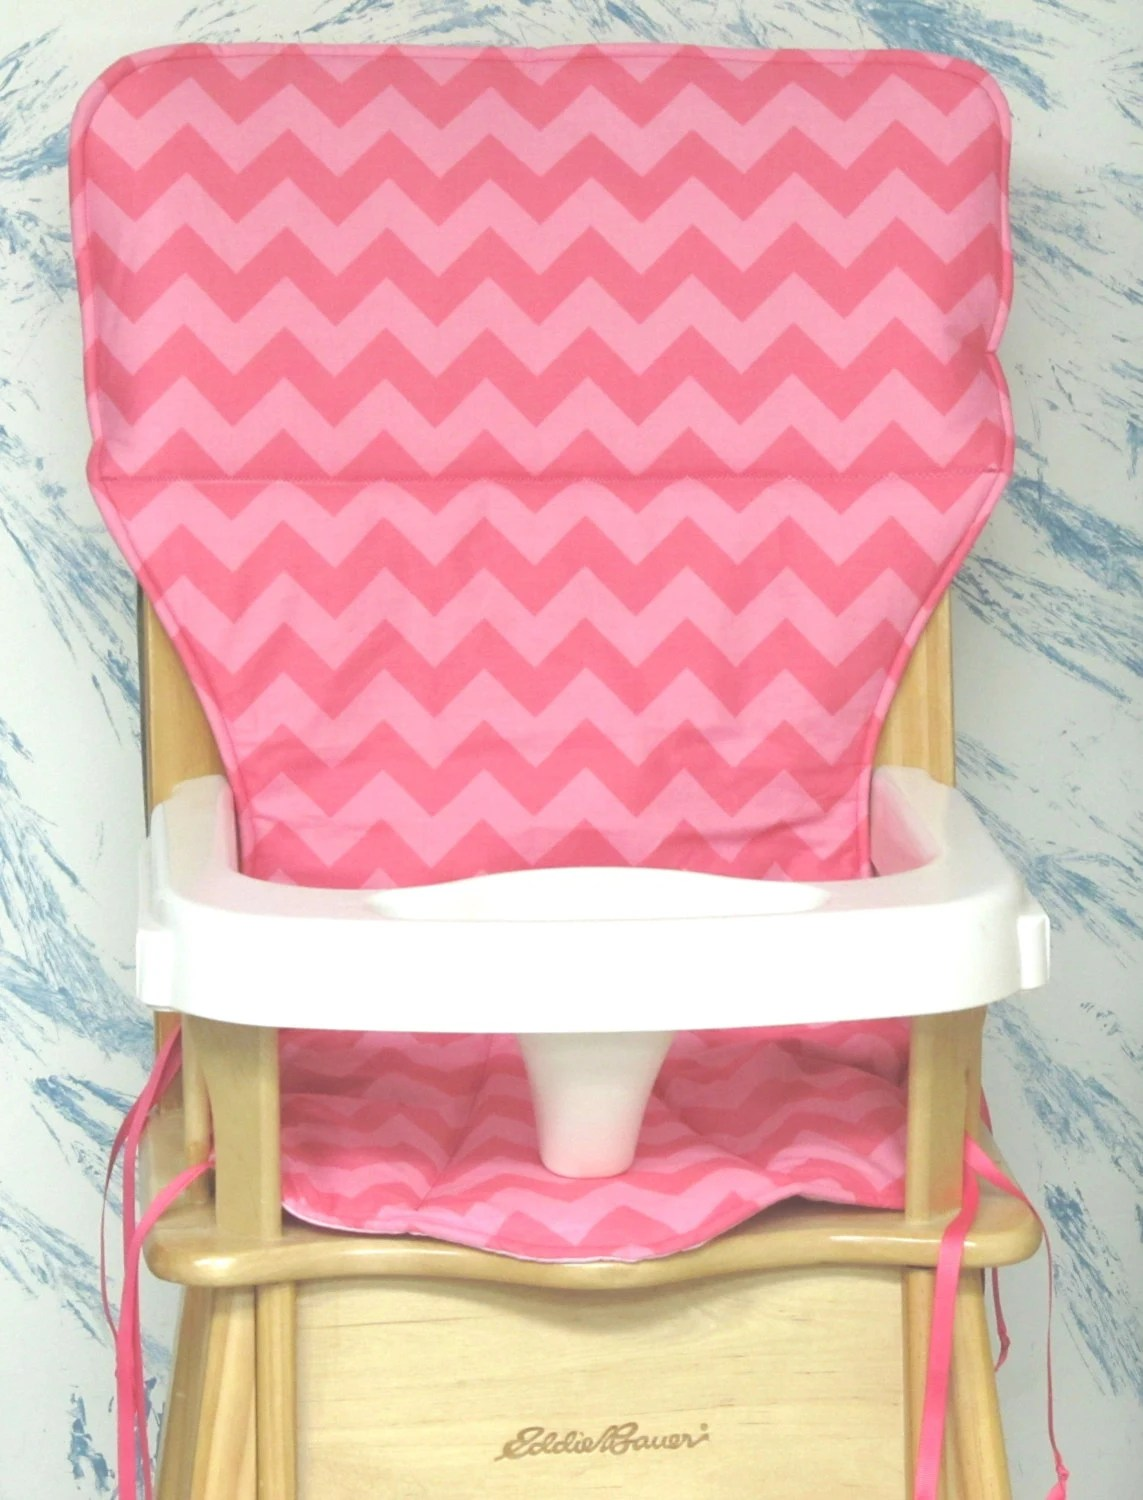 Eddie Bauer High Chair Pad Replacement Coverpink Zigzagtwo